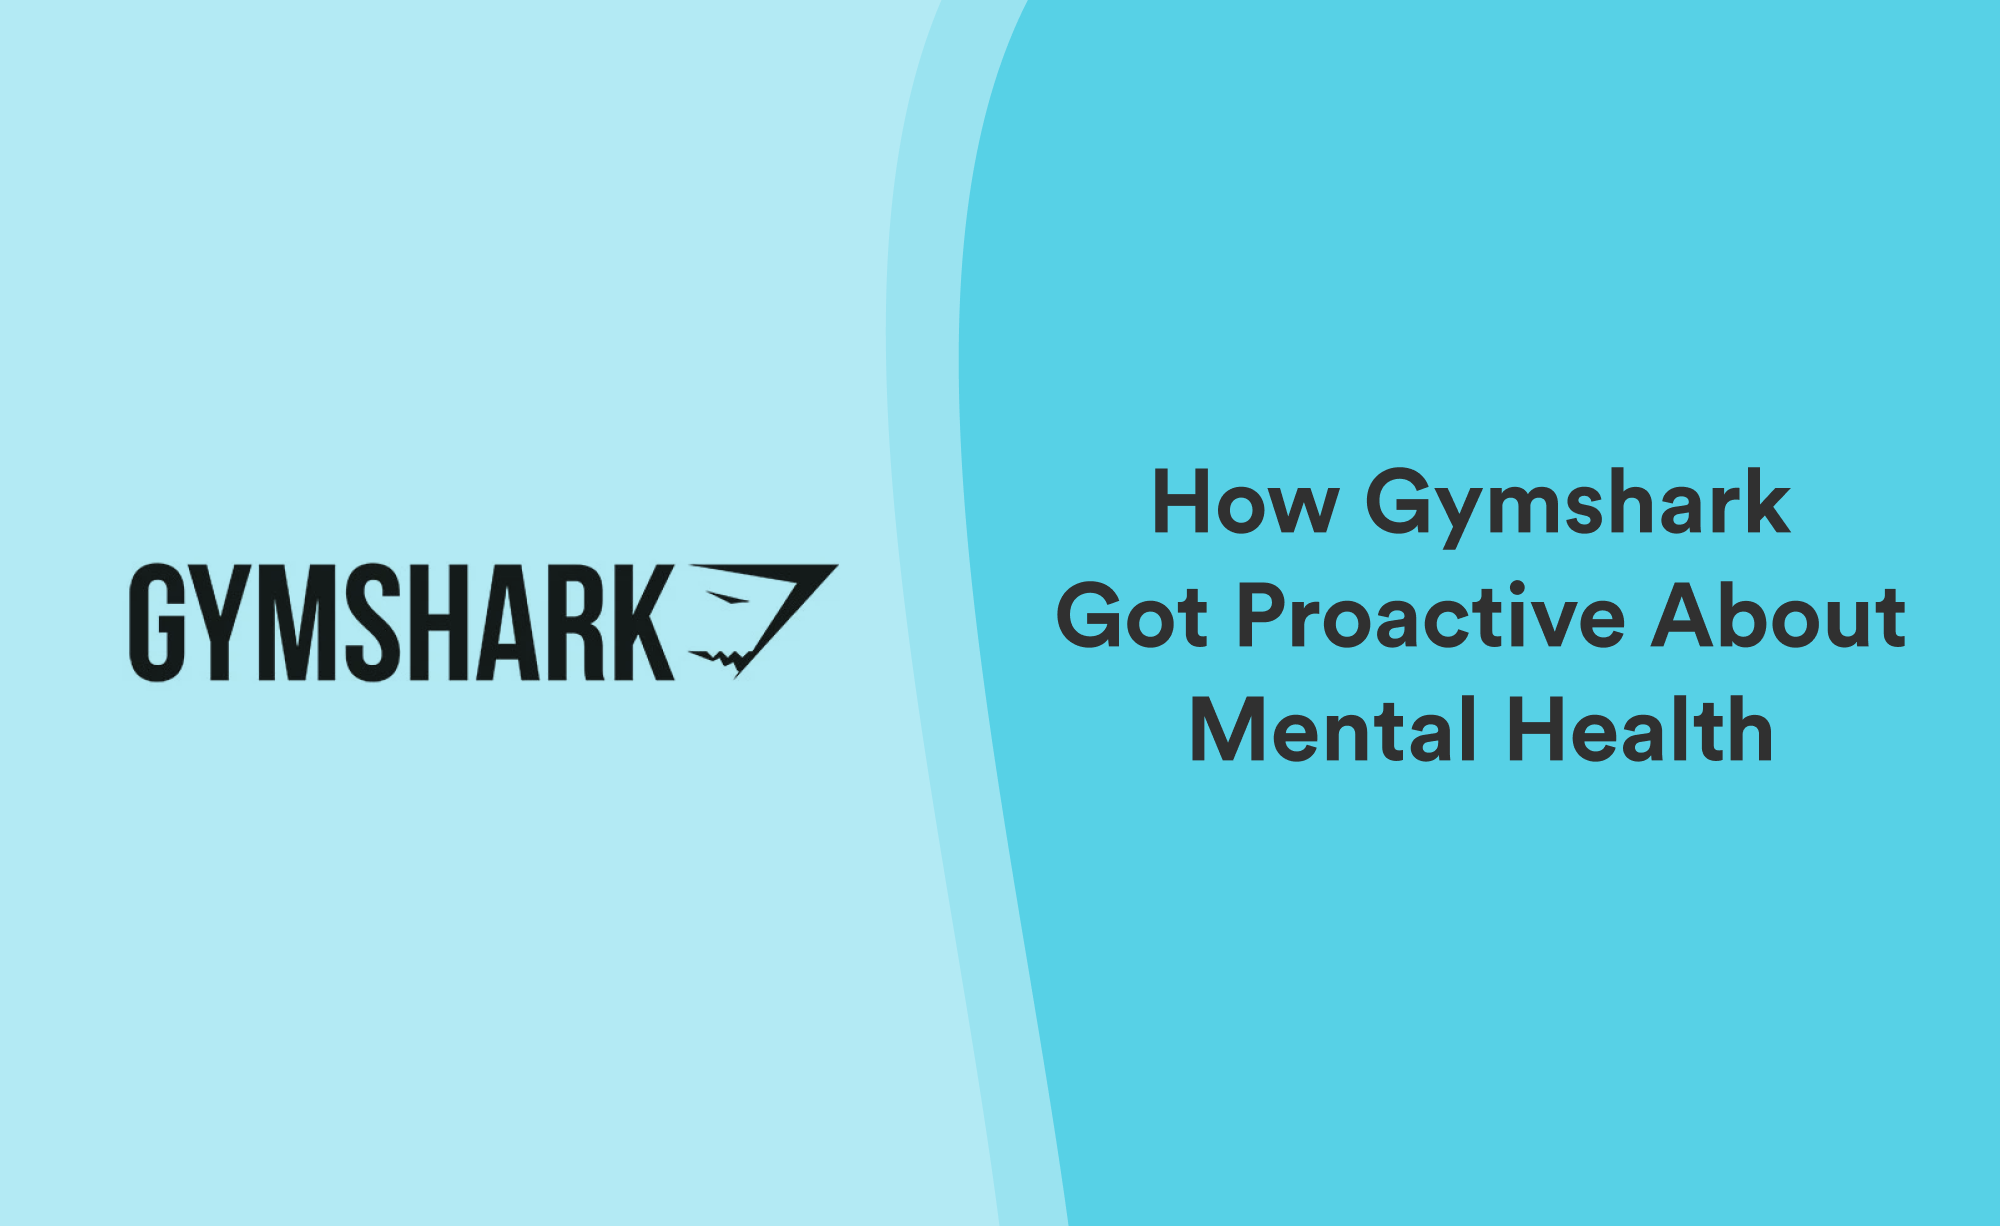 How Gymshark partner with Unmind to deliver a proactive workplace mental health programme